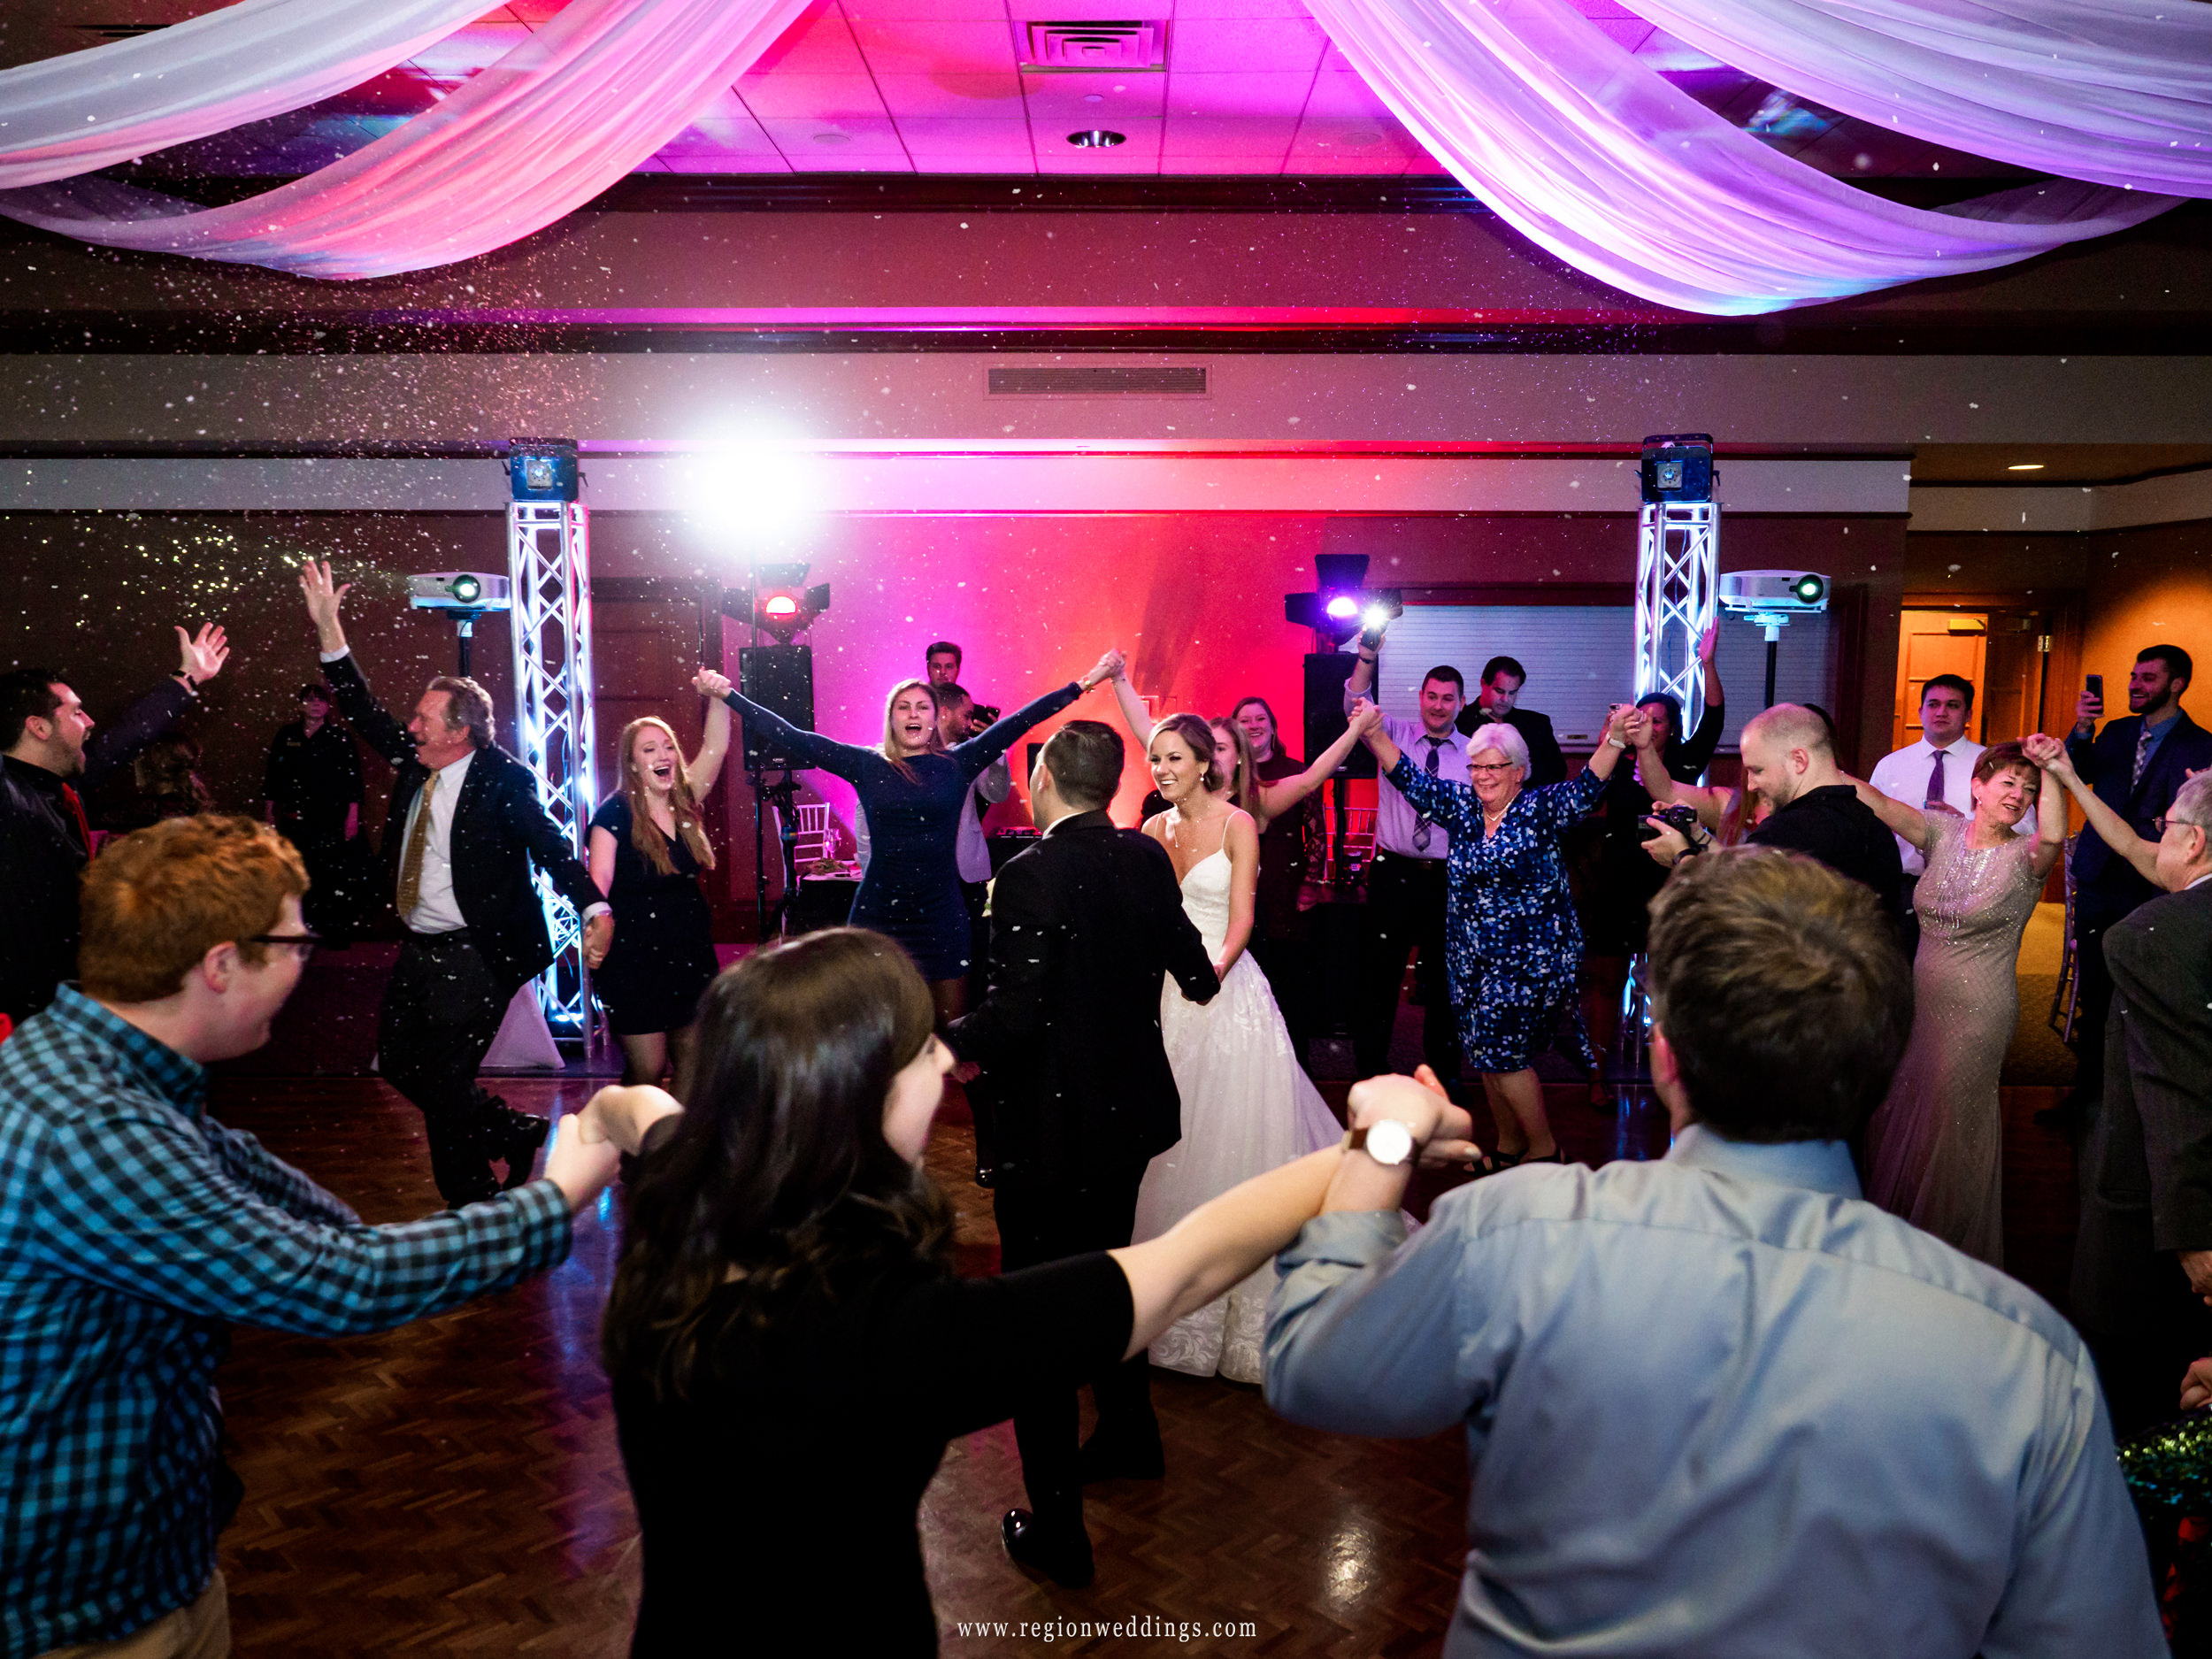 Snow falls on the dance floor at a winter wedding reception at Sand Creek Country Club.